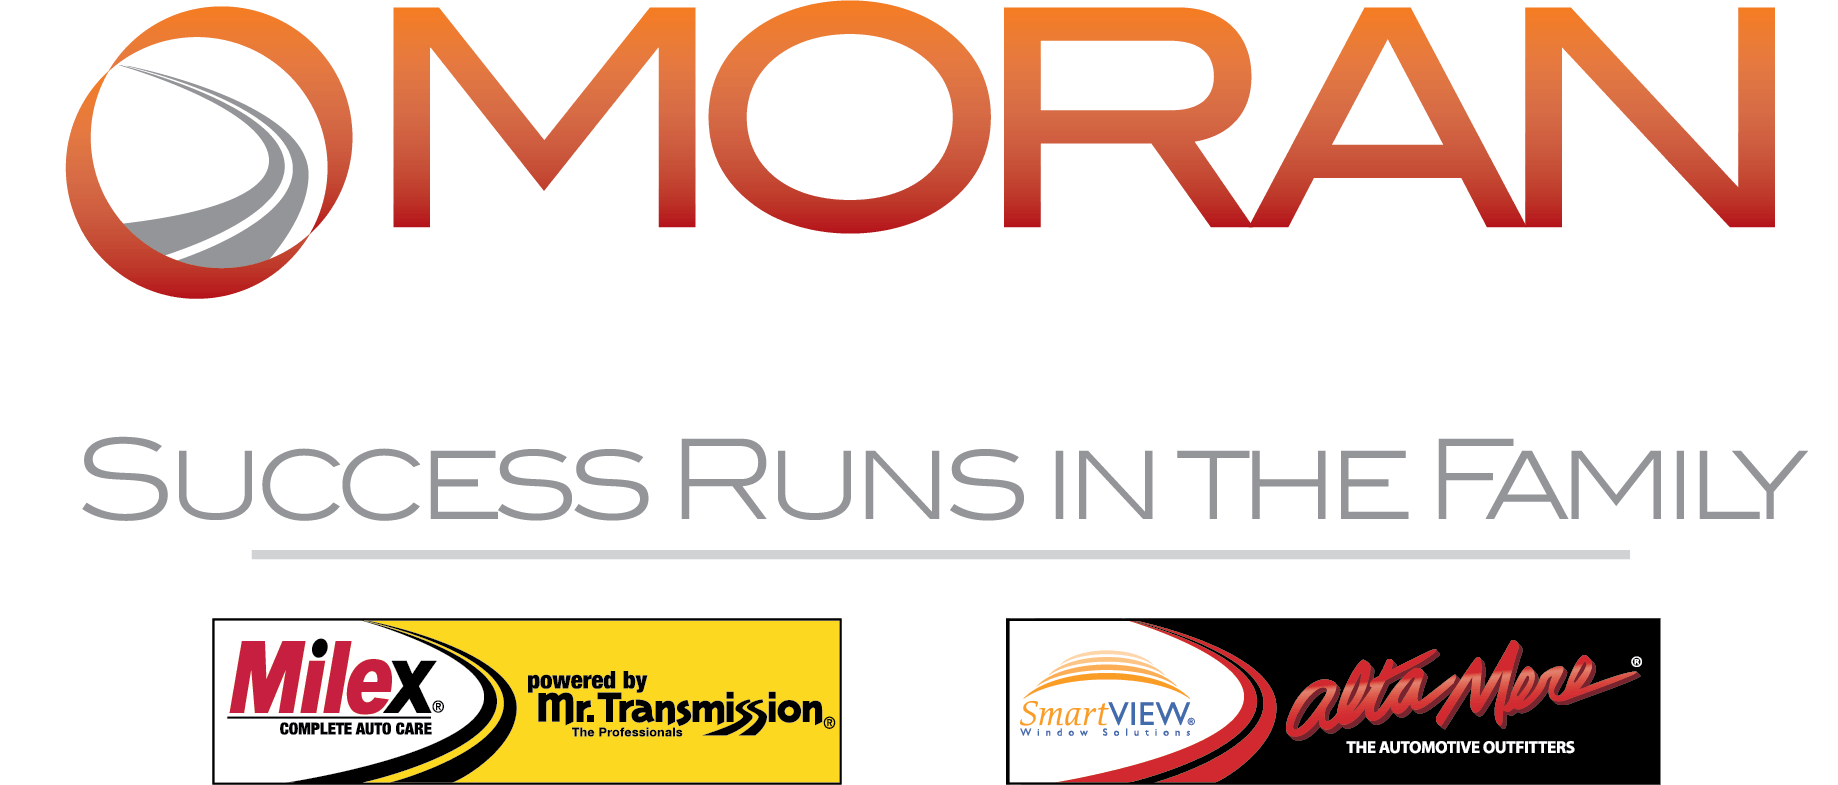 Top Automotive Franchise - Moran Family of Brands